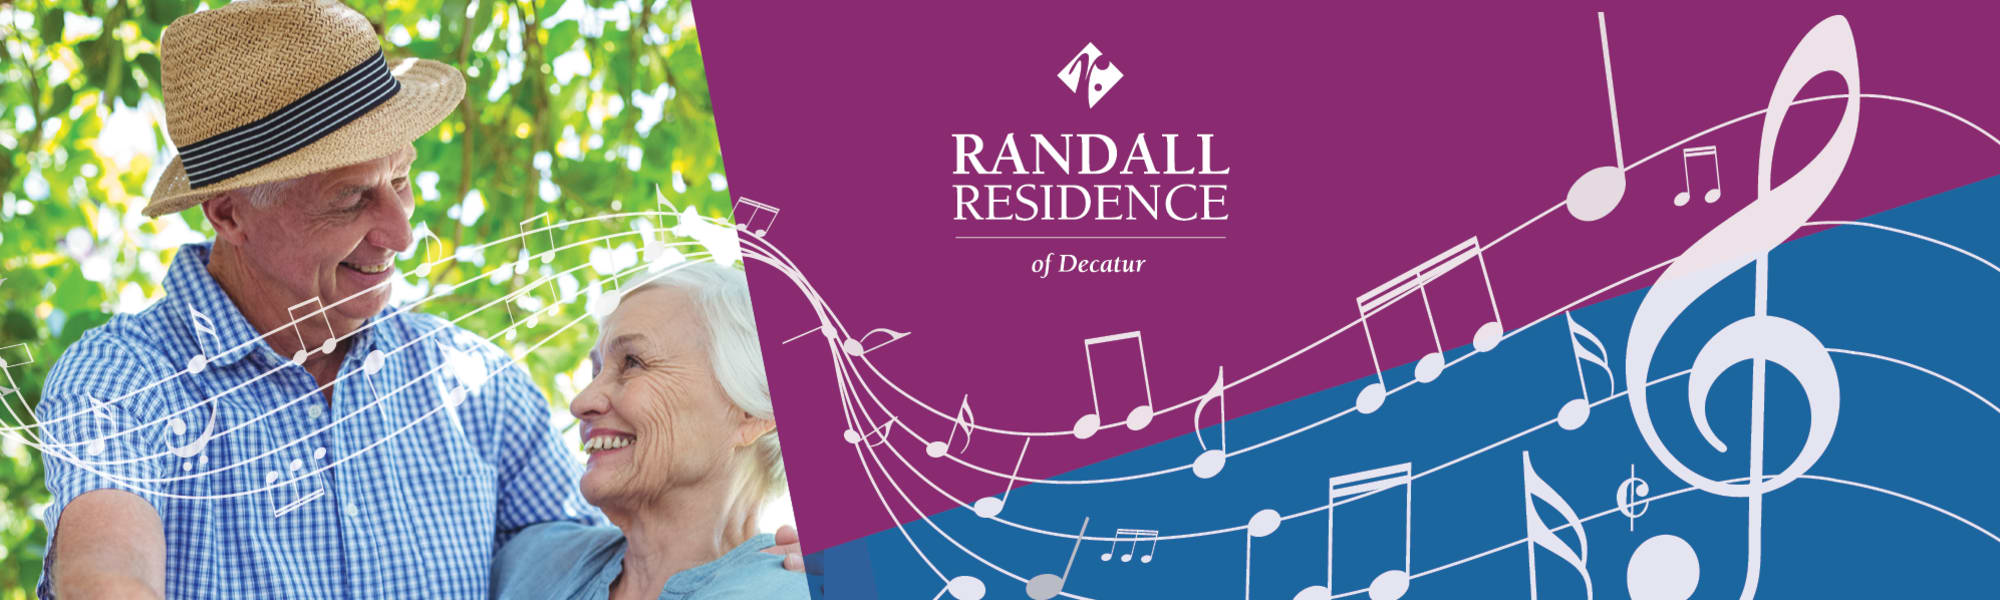 Events at Randall Residence of Decatur in Decatur, Illinois